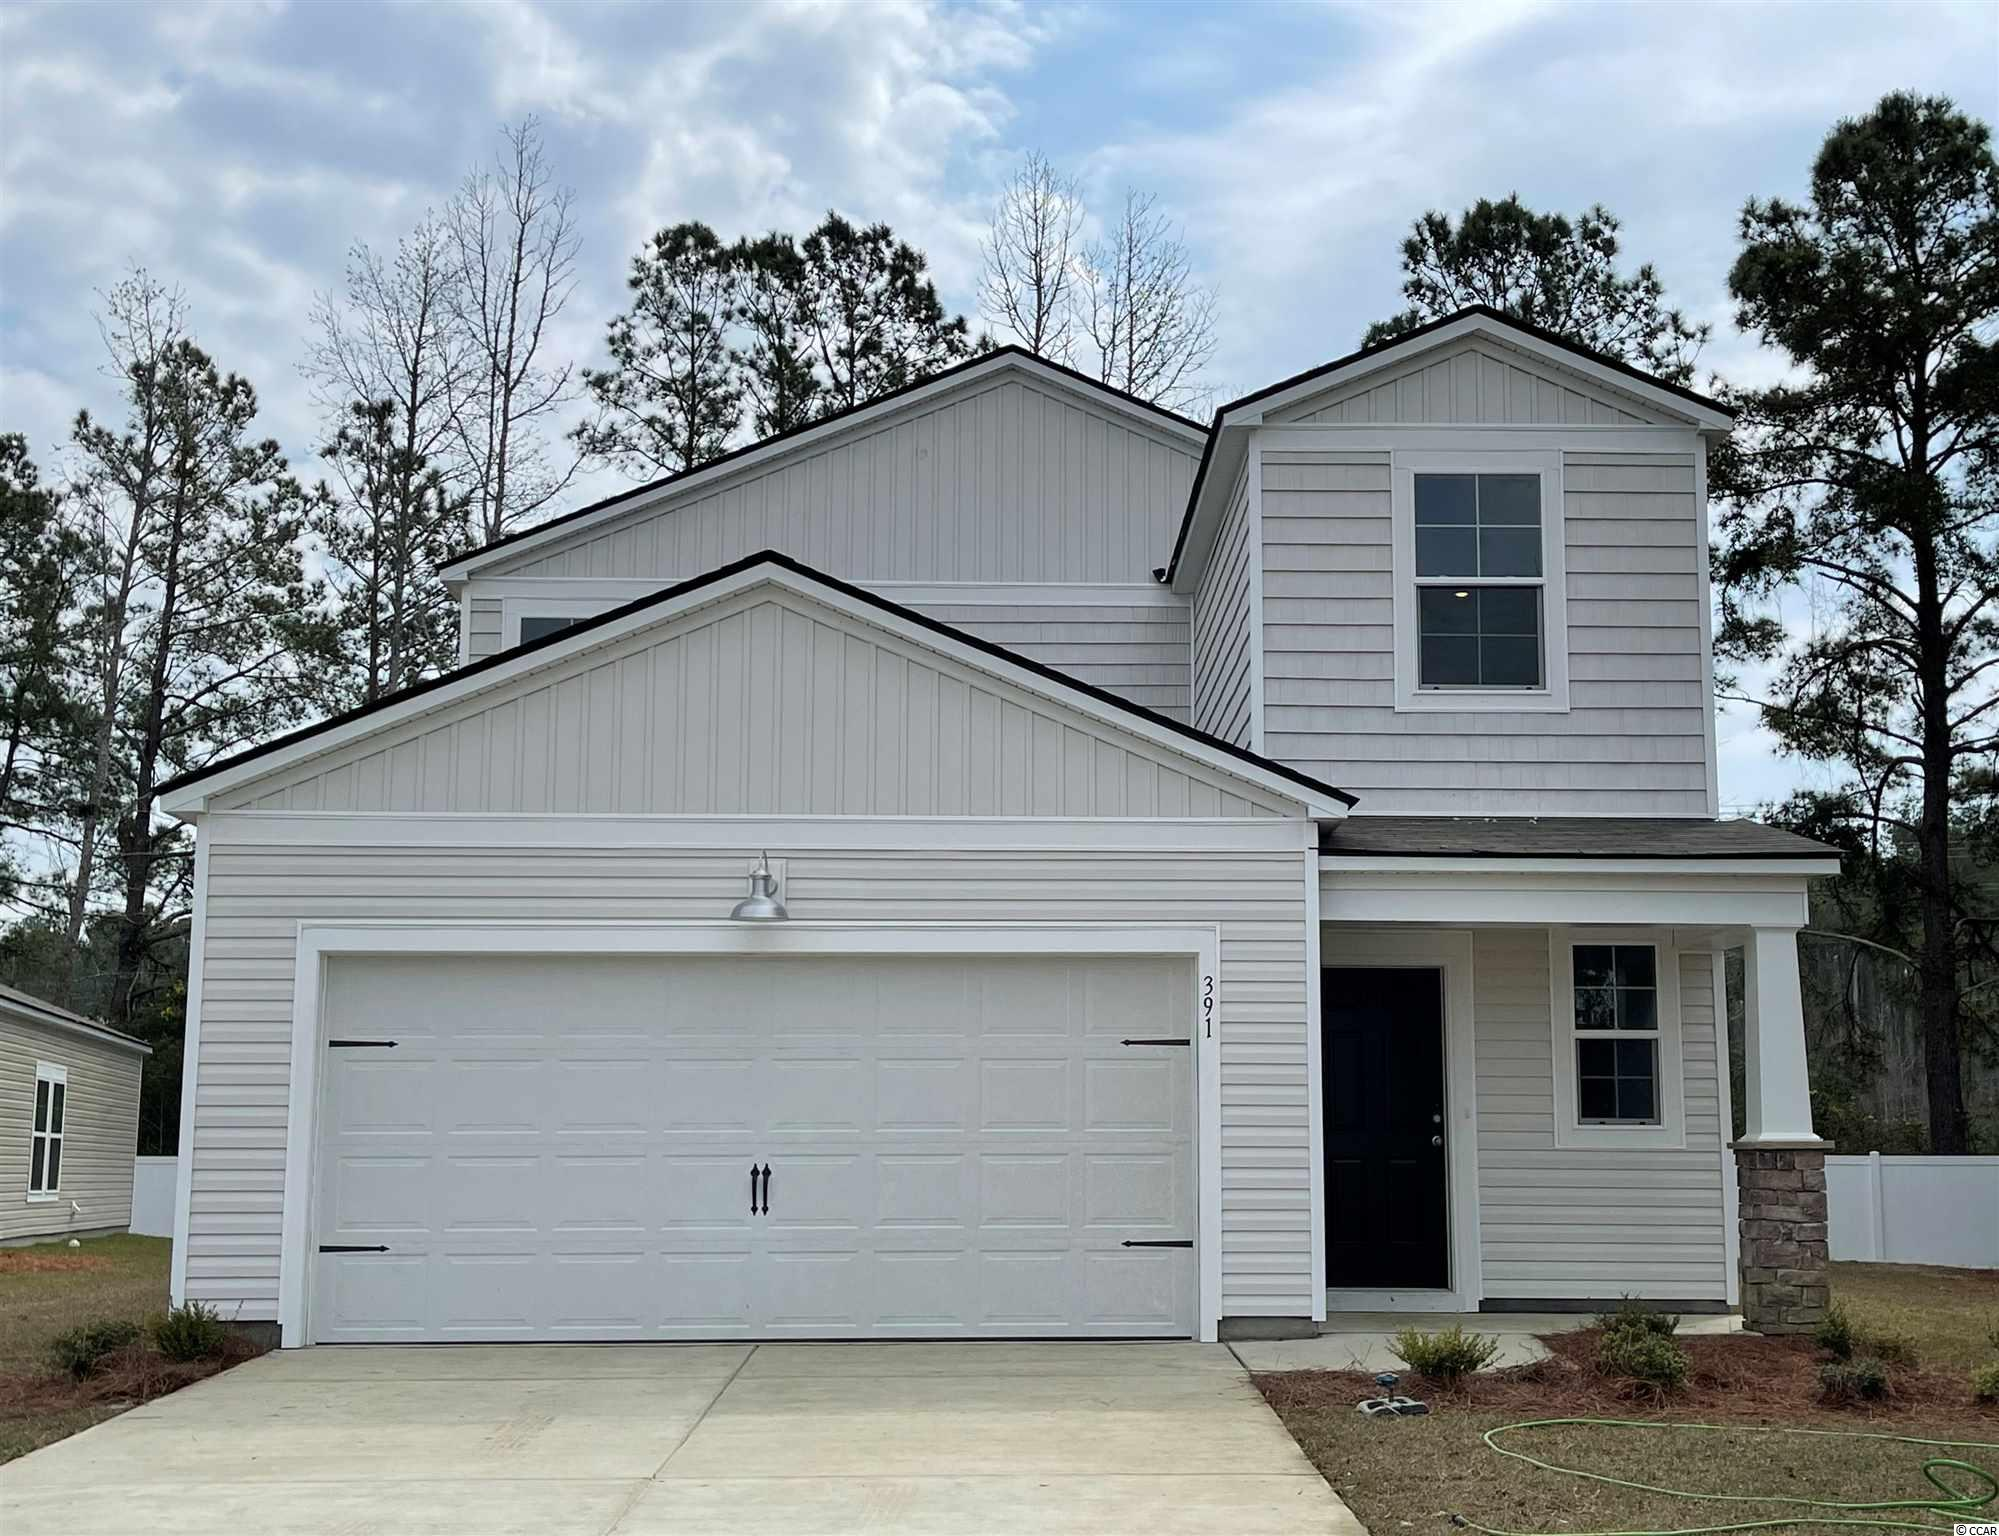 """Under construction - Ready March 2021. The Columbia is a Two Story floor plan that features 5 bedrooms, 2 bathrooms and a Powder Room, The Owners Suite is located on the ground floor, which includes a spacious Master Bath and an oversized walk in Closet. The Owners suite bathroom features double sinks an elevated vanity and a 5' shower. This open concept home hallmarks 36"""" stylish white cabinets, a 3 x 6 subway tile back splash in the kitchen, granite counter tops in the kitchen, Shaw laminate flooring in the main living areas, GE  Stainless steel appliances including a Gas Range, Microwave Range Hood, Dishwasher, and Disposal.  This home also features LED recess lighting, Moen faucets and towel hooks, elongated toilets with soft close lids, a Rinnai tankless gas water heater, and automatic garage door opener. Pictures are of a previously built home that may have additional upgrades and are for illustrative purposes only."""